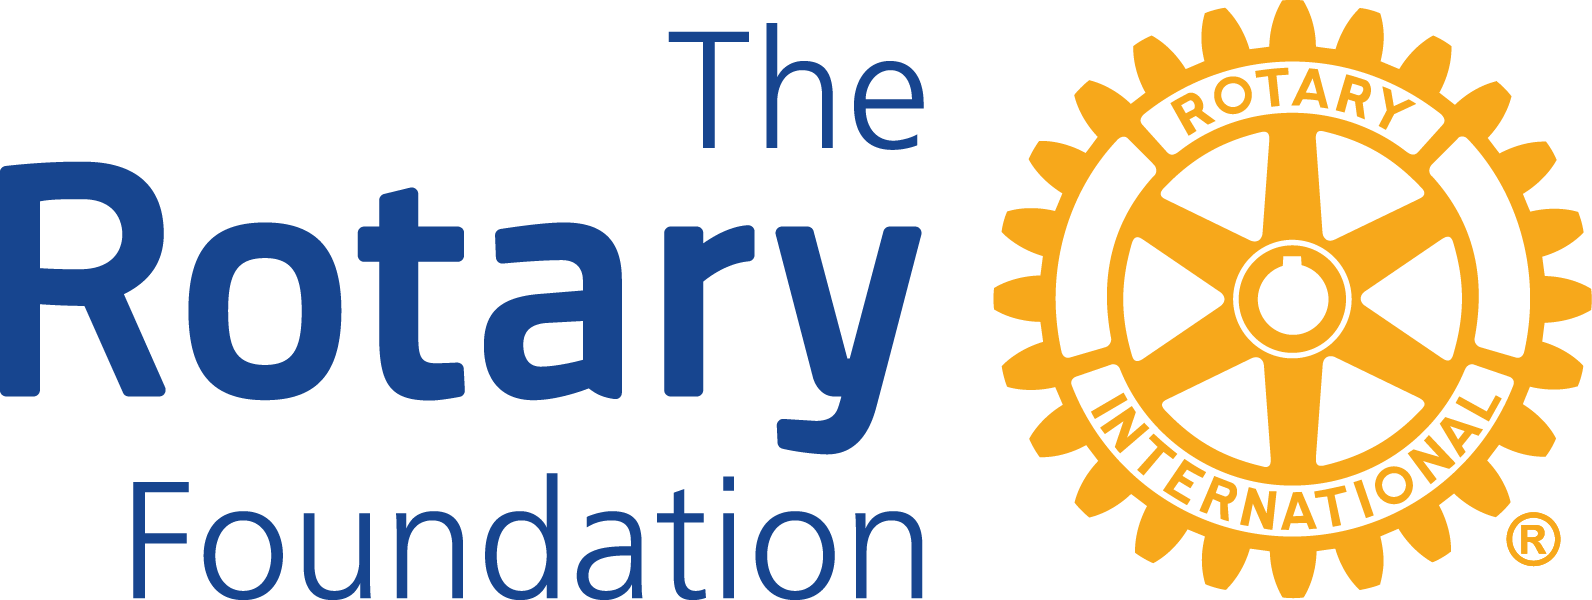 """The Rotary Foundation (Logo is Rotary Mark of Excellence, yellow gear with words """"Rotary International"""")"""